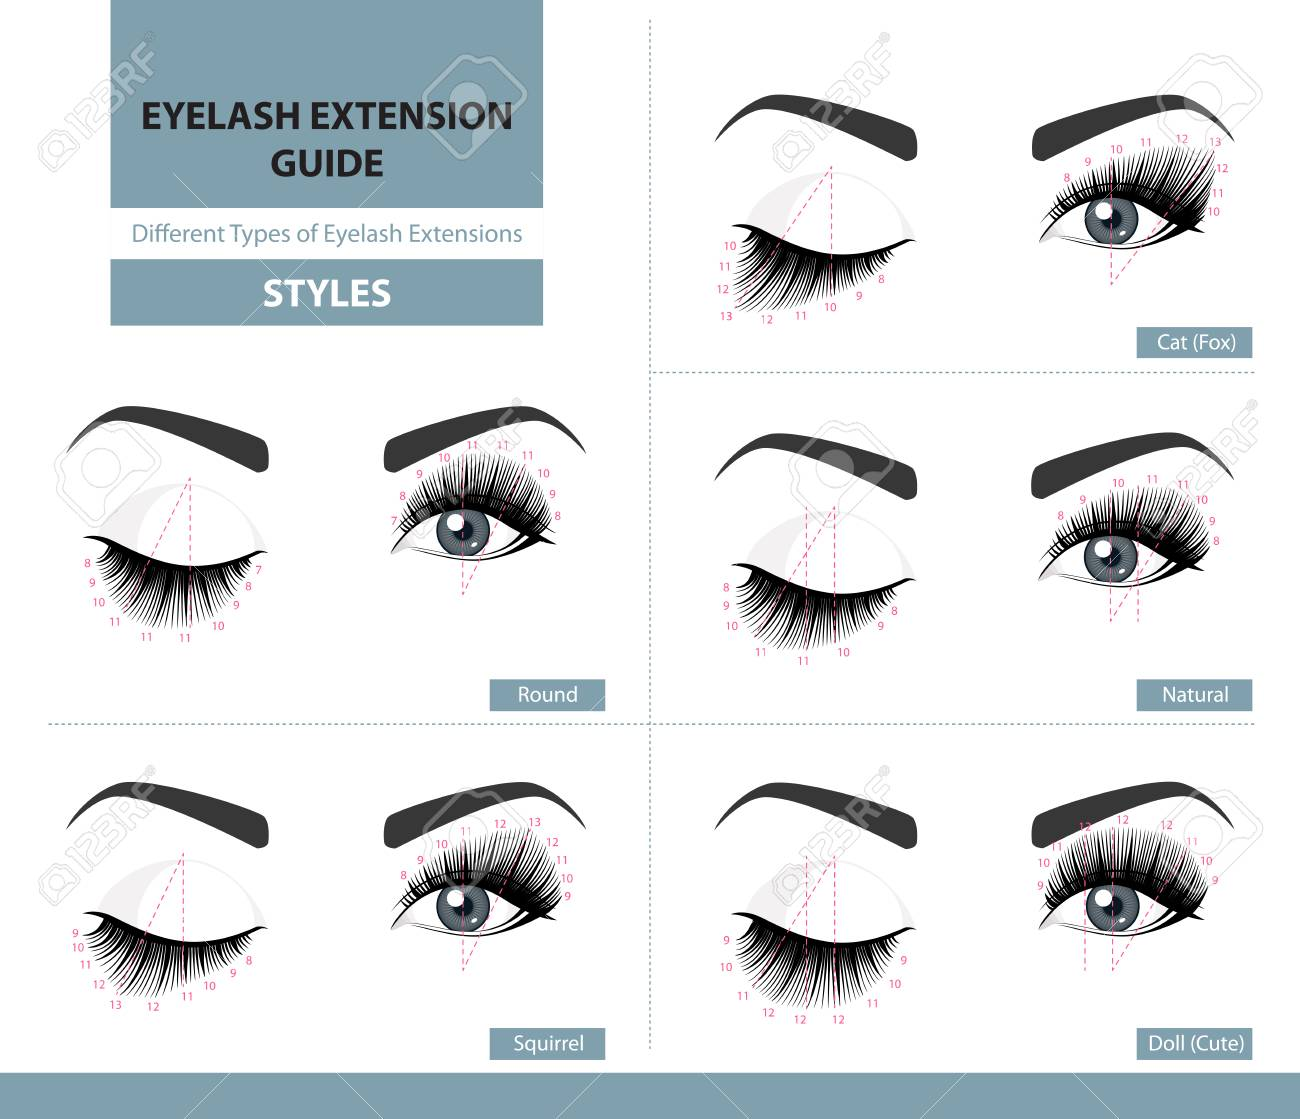 Different types of eyelash extensions. - 91169500